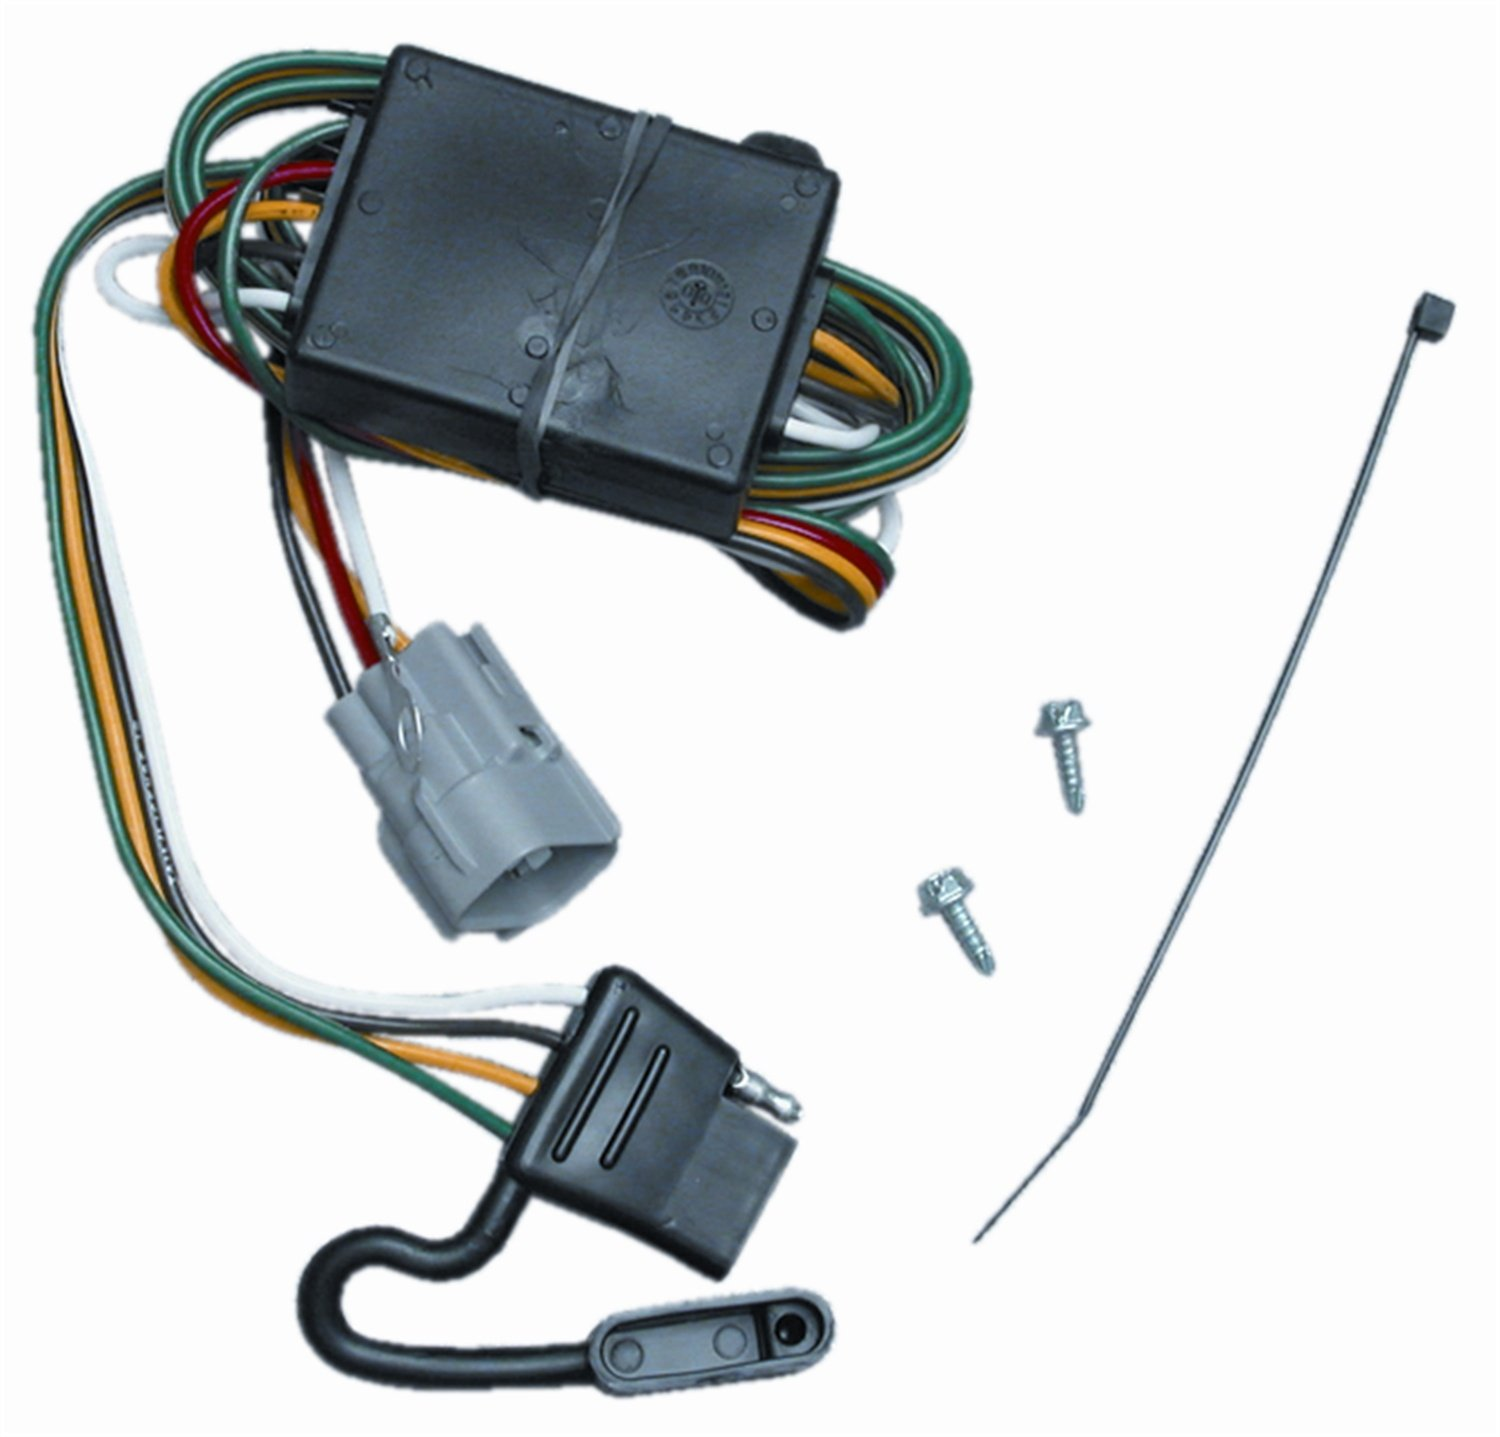 71zHscBxD1L._SL1500_ amazon com vehicle to trailer wiring connector for 98 99 toyota quick connect trailer wiring harness at crackthecode.co